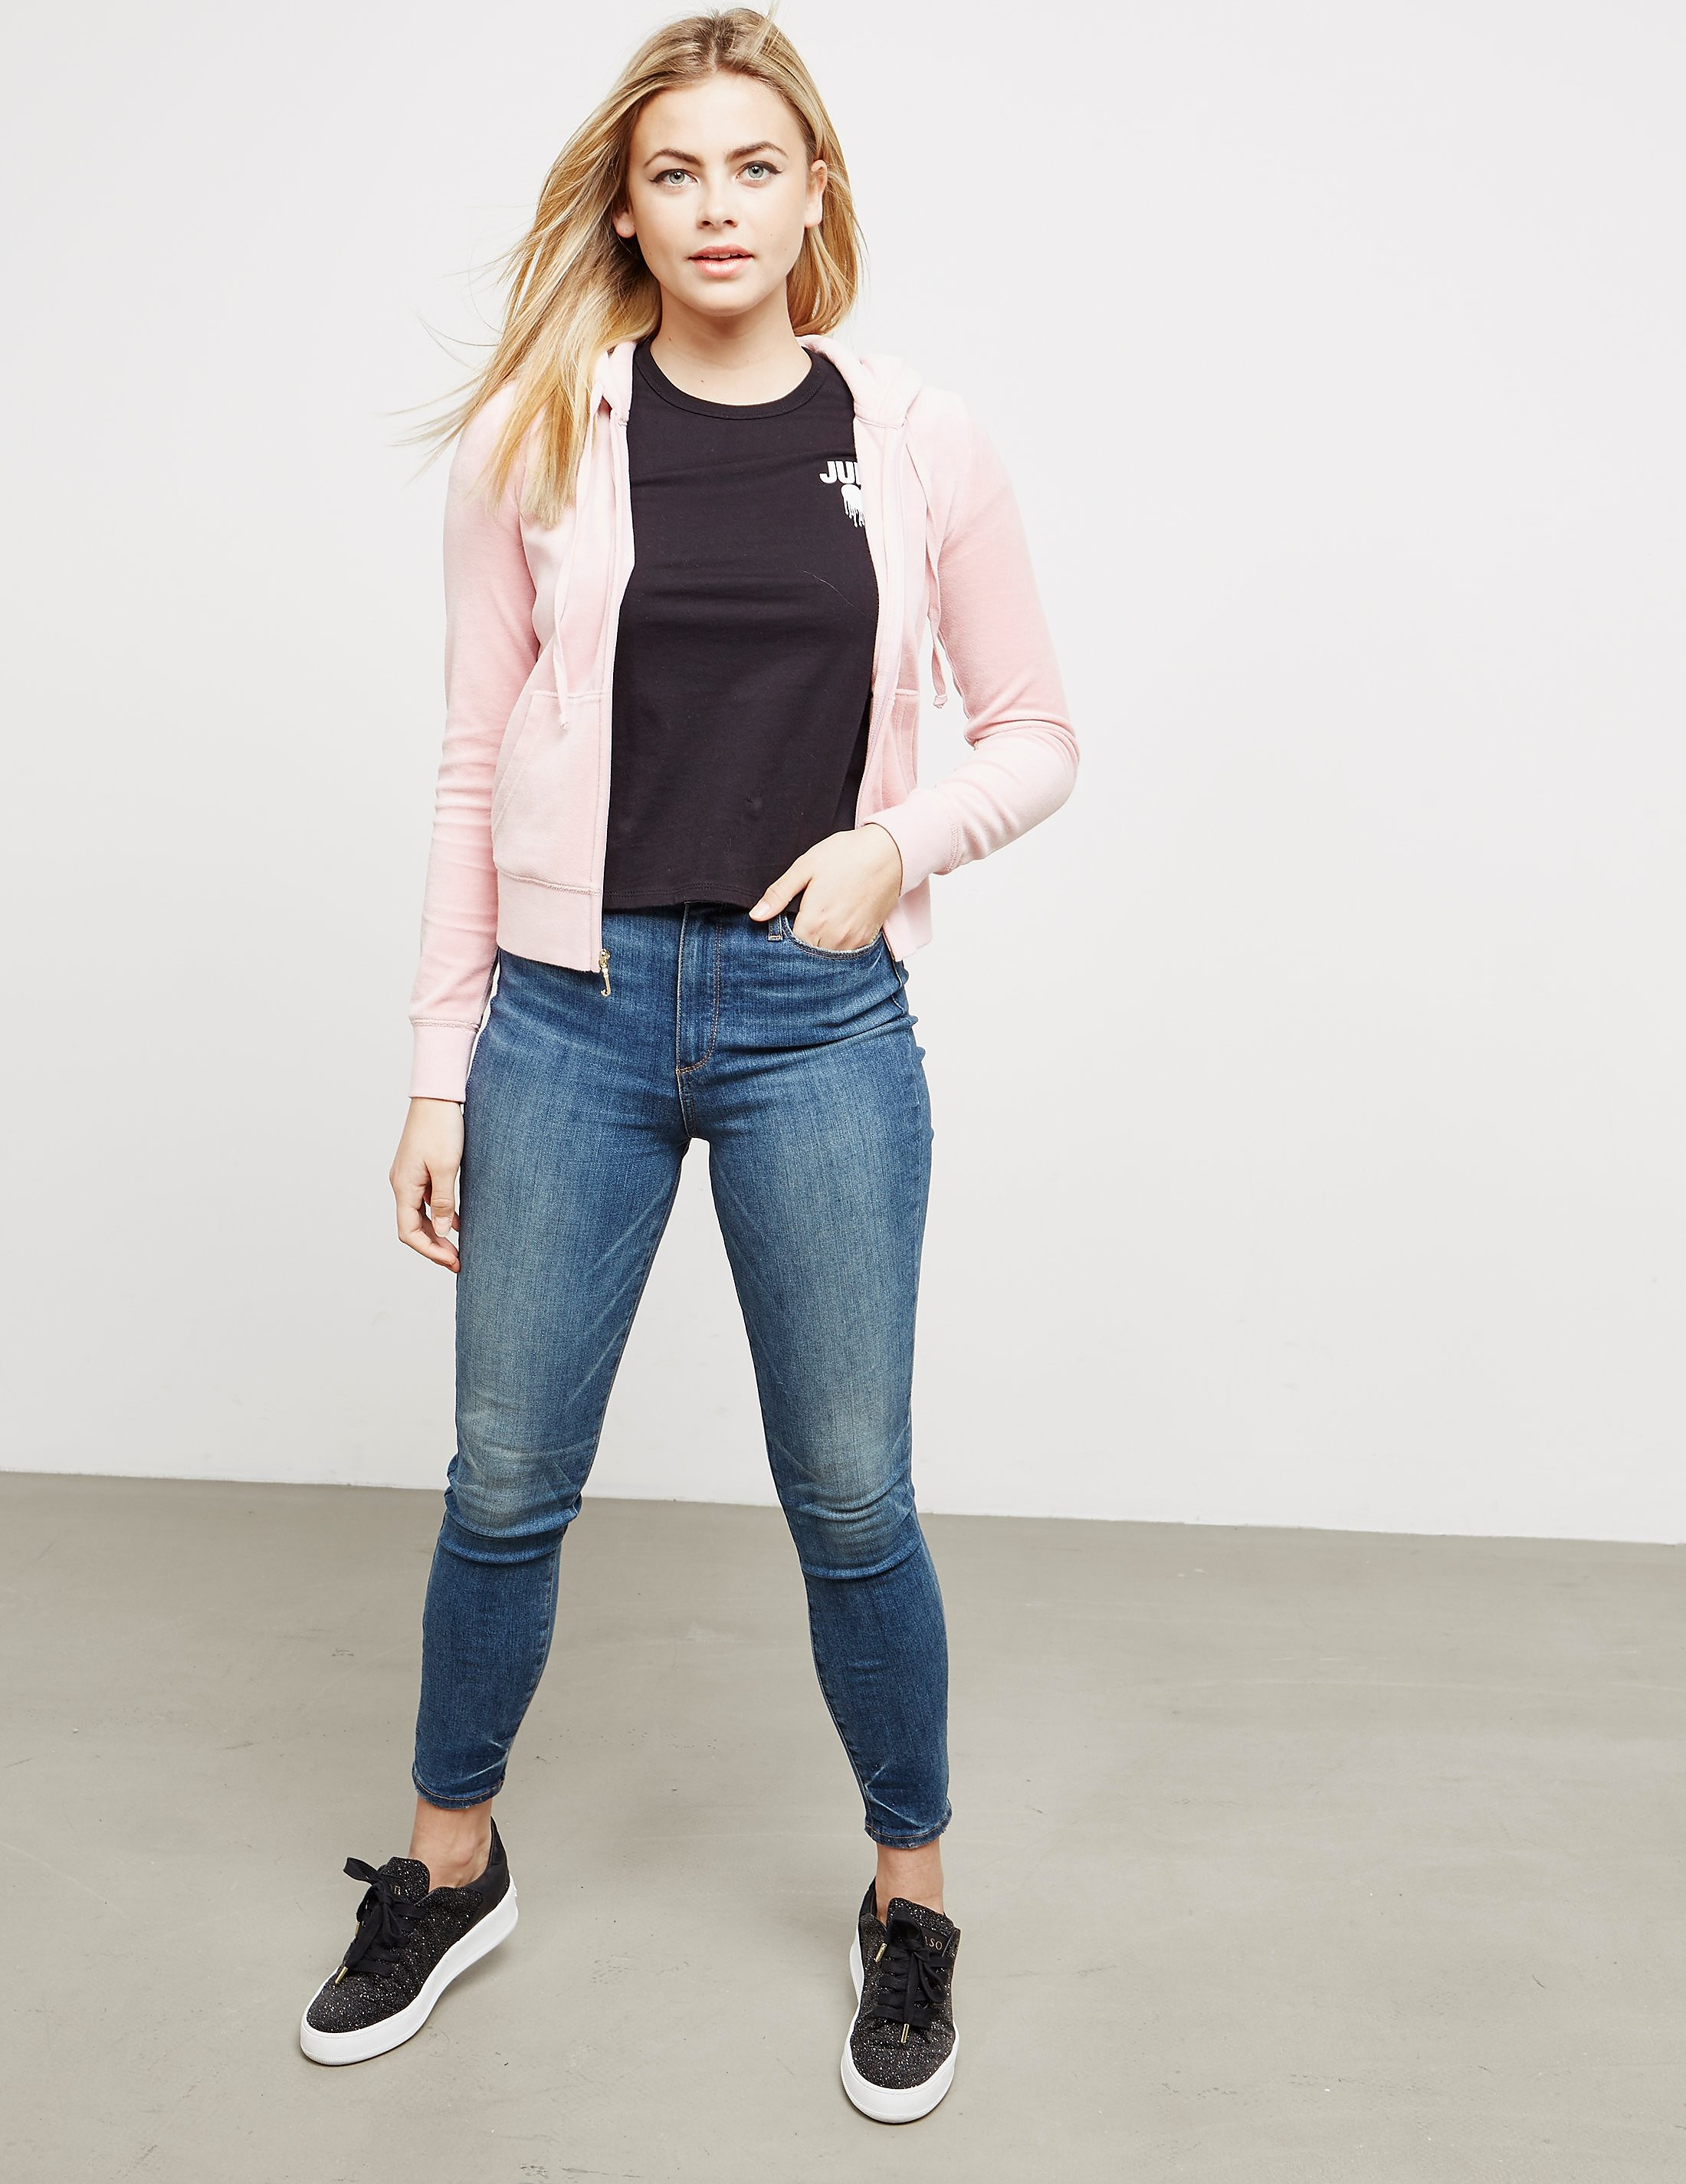 Juicy Couture Robert Full-Zip Hoody